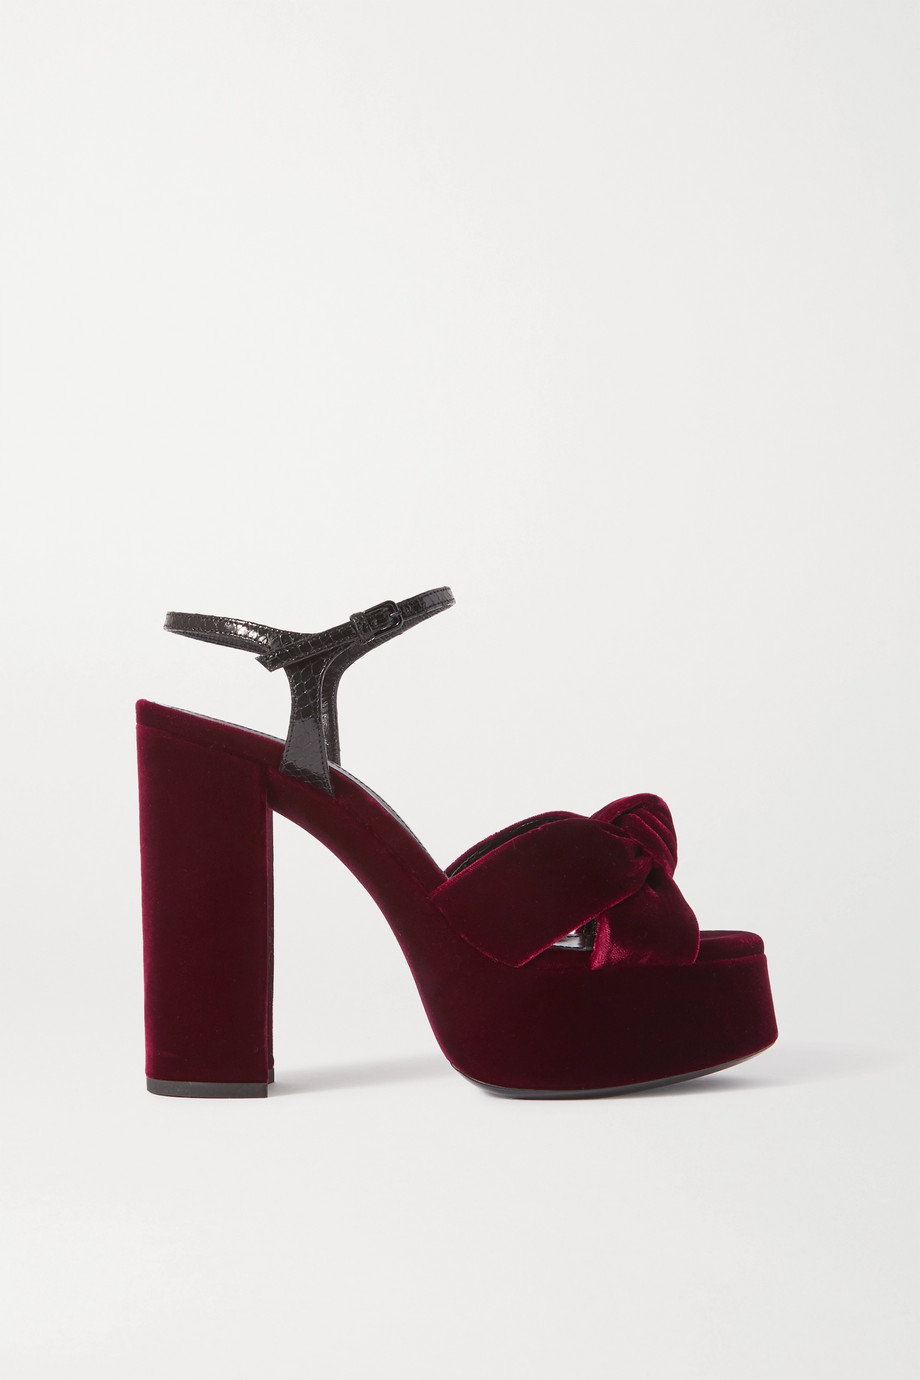 SAINT LAURENT Bianca snake-effect leather-trimmed knotted velvet platform sandals